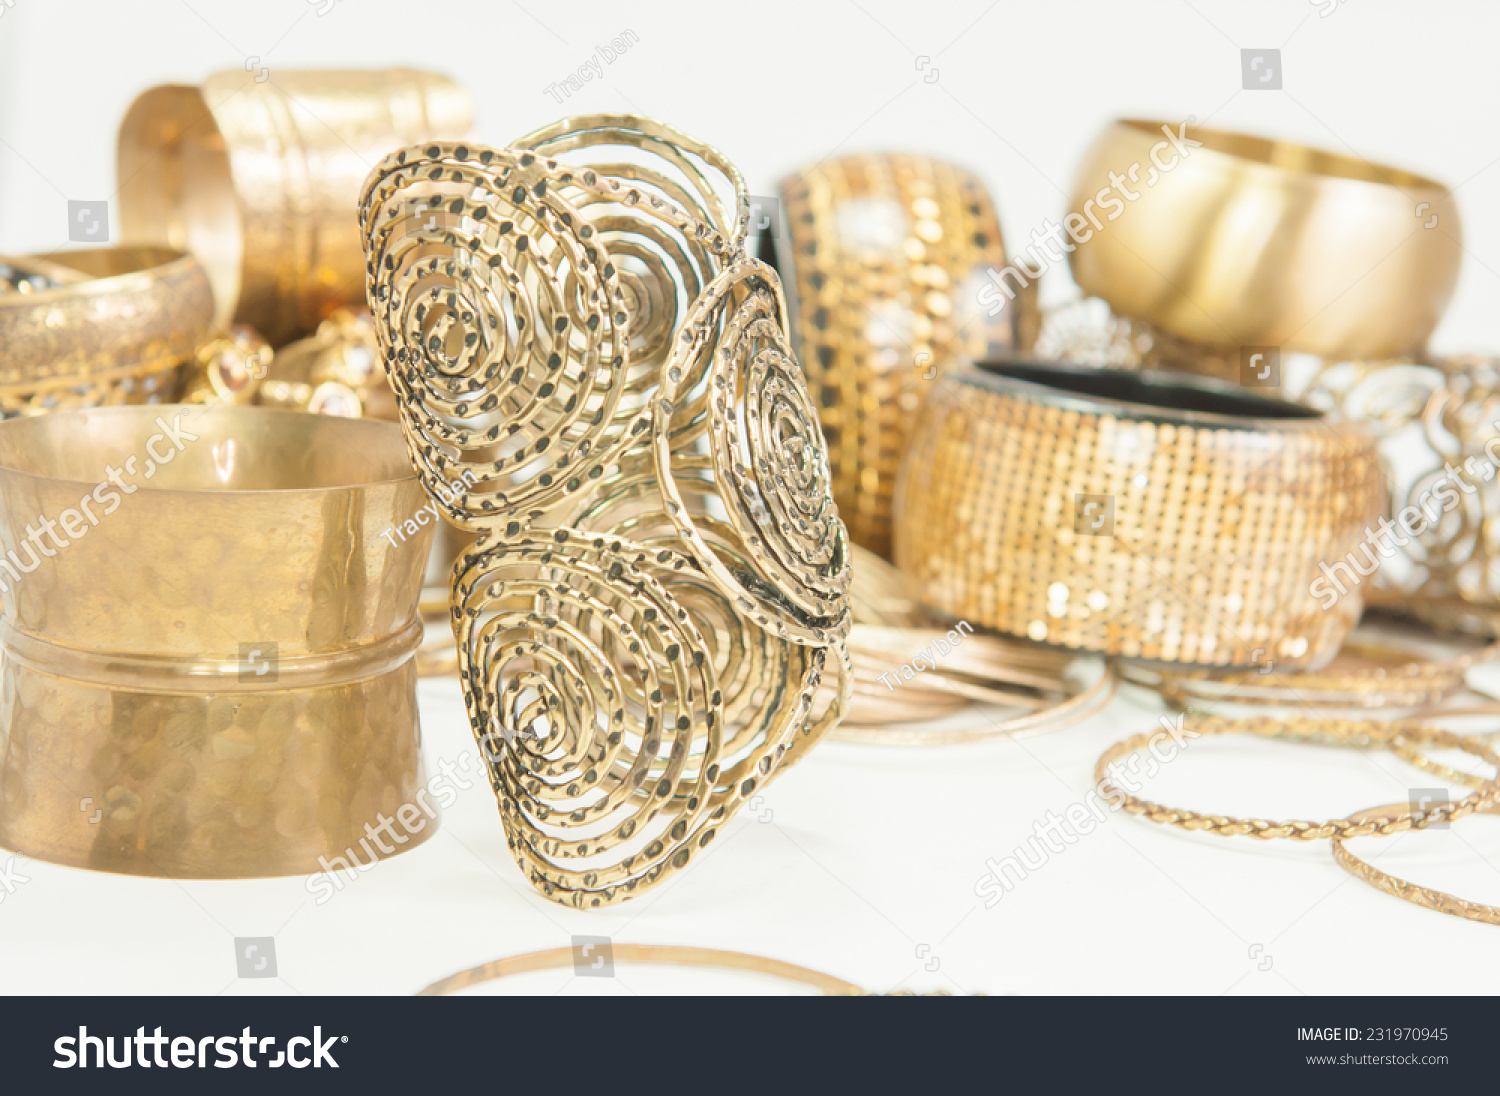 beautiful rings and bangles on handexpensive gold jewelry